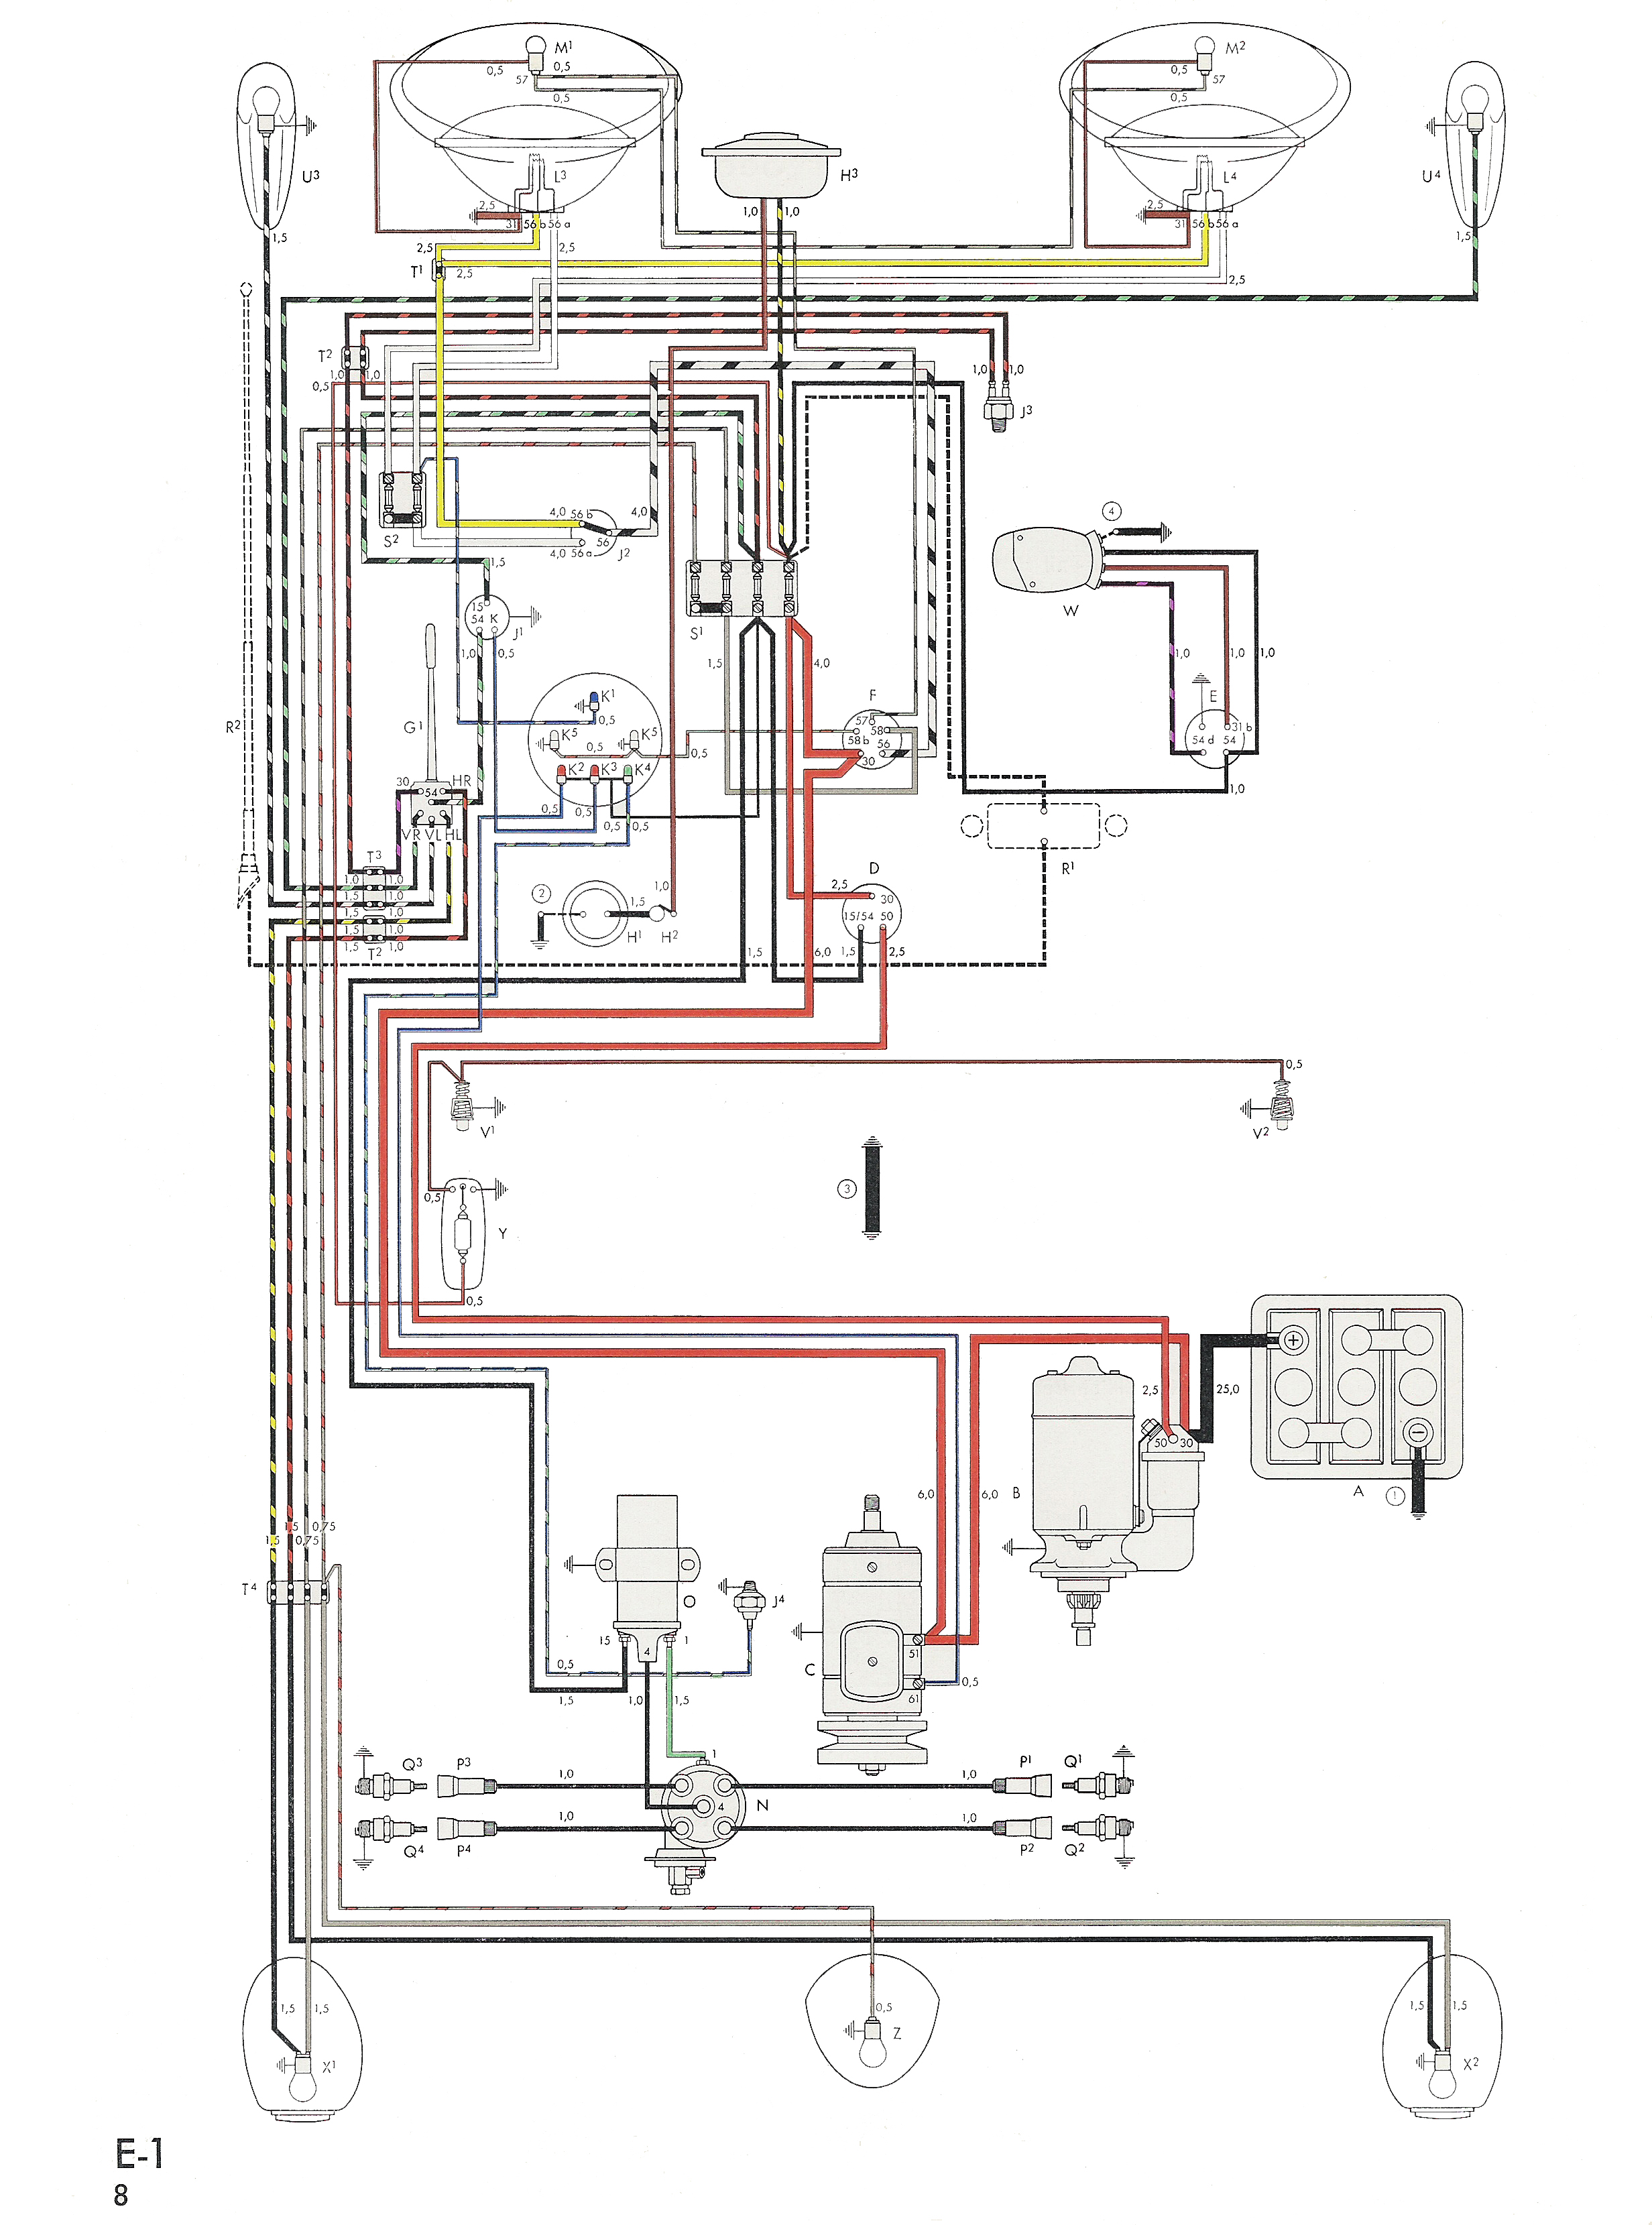 general wiring diagram wiring diagram ford wiring schematic thesamba com type 1 wiring diagrams basic electrical wiring diagrams general wiring diagram